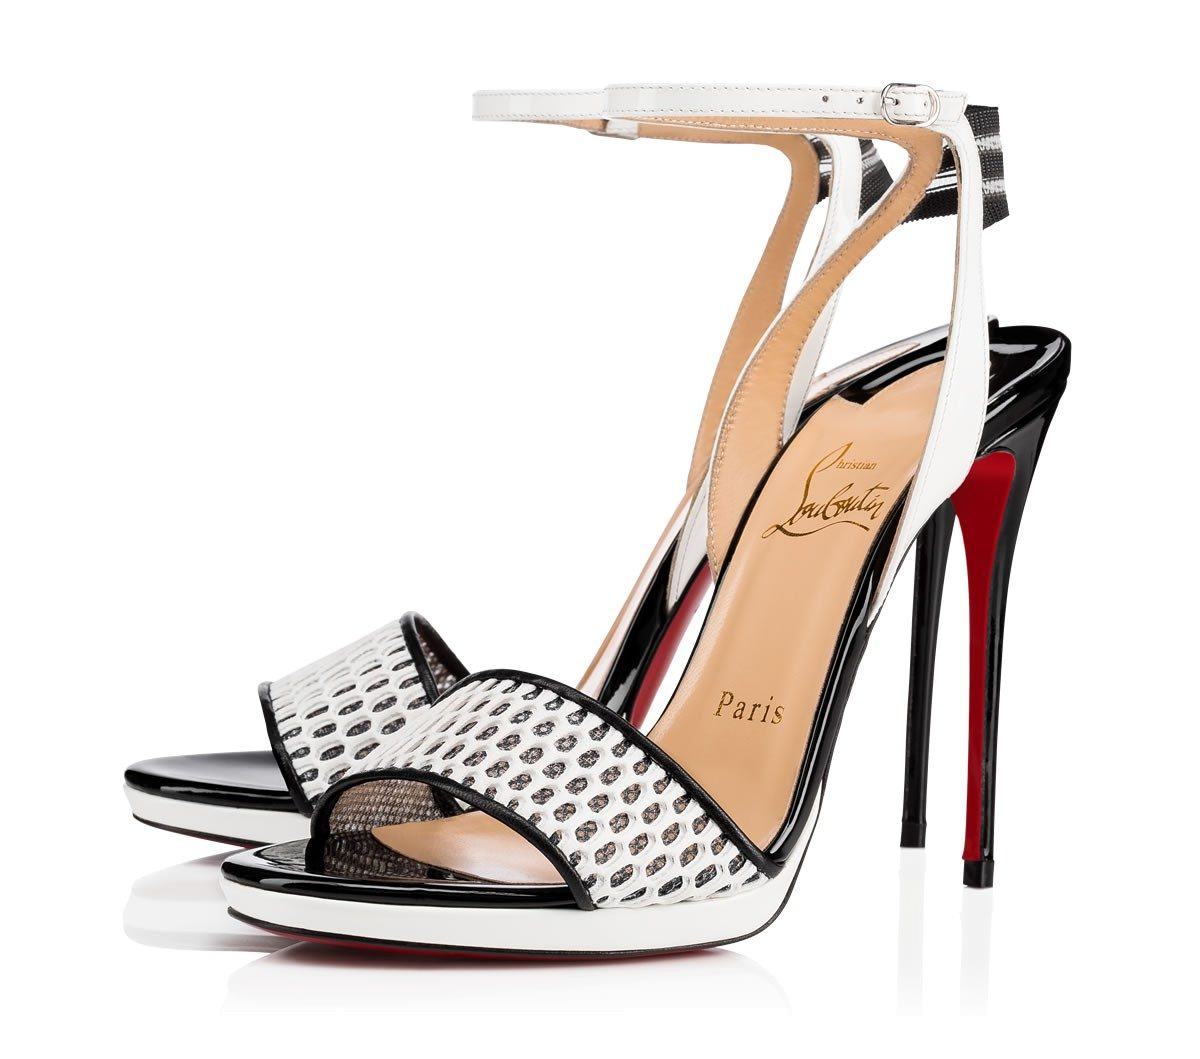 christianlouboutin-discoport-1180756_BK09_1_1200x1200_1512040175